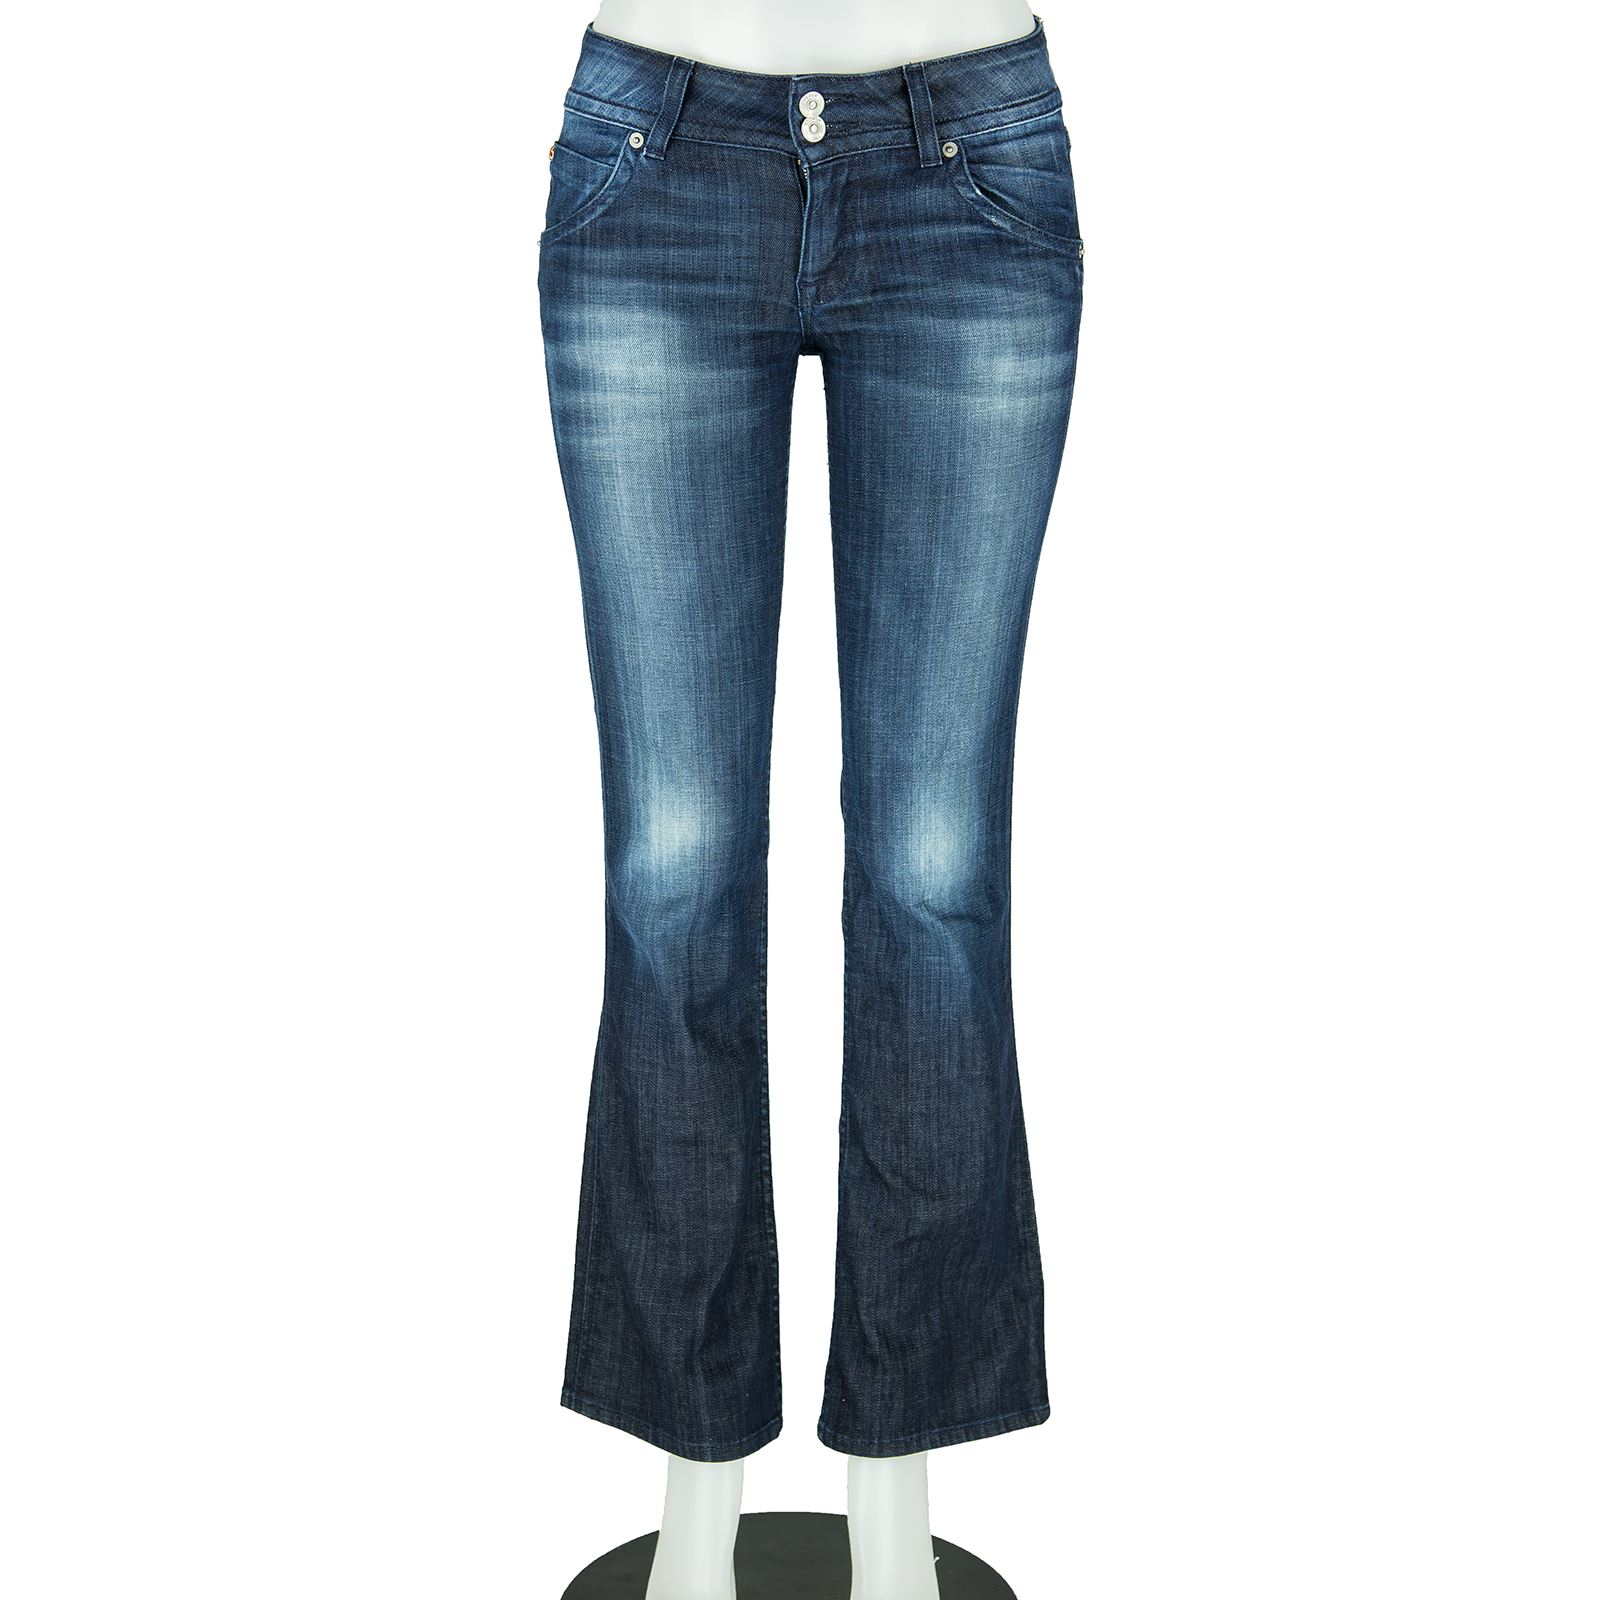 f62dd73e3e0 Hudson Dark Blue Denim Washed Zip Fly Signature Petite Boot Cut Jeans Size  28